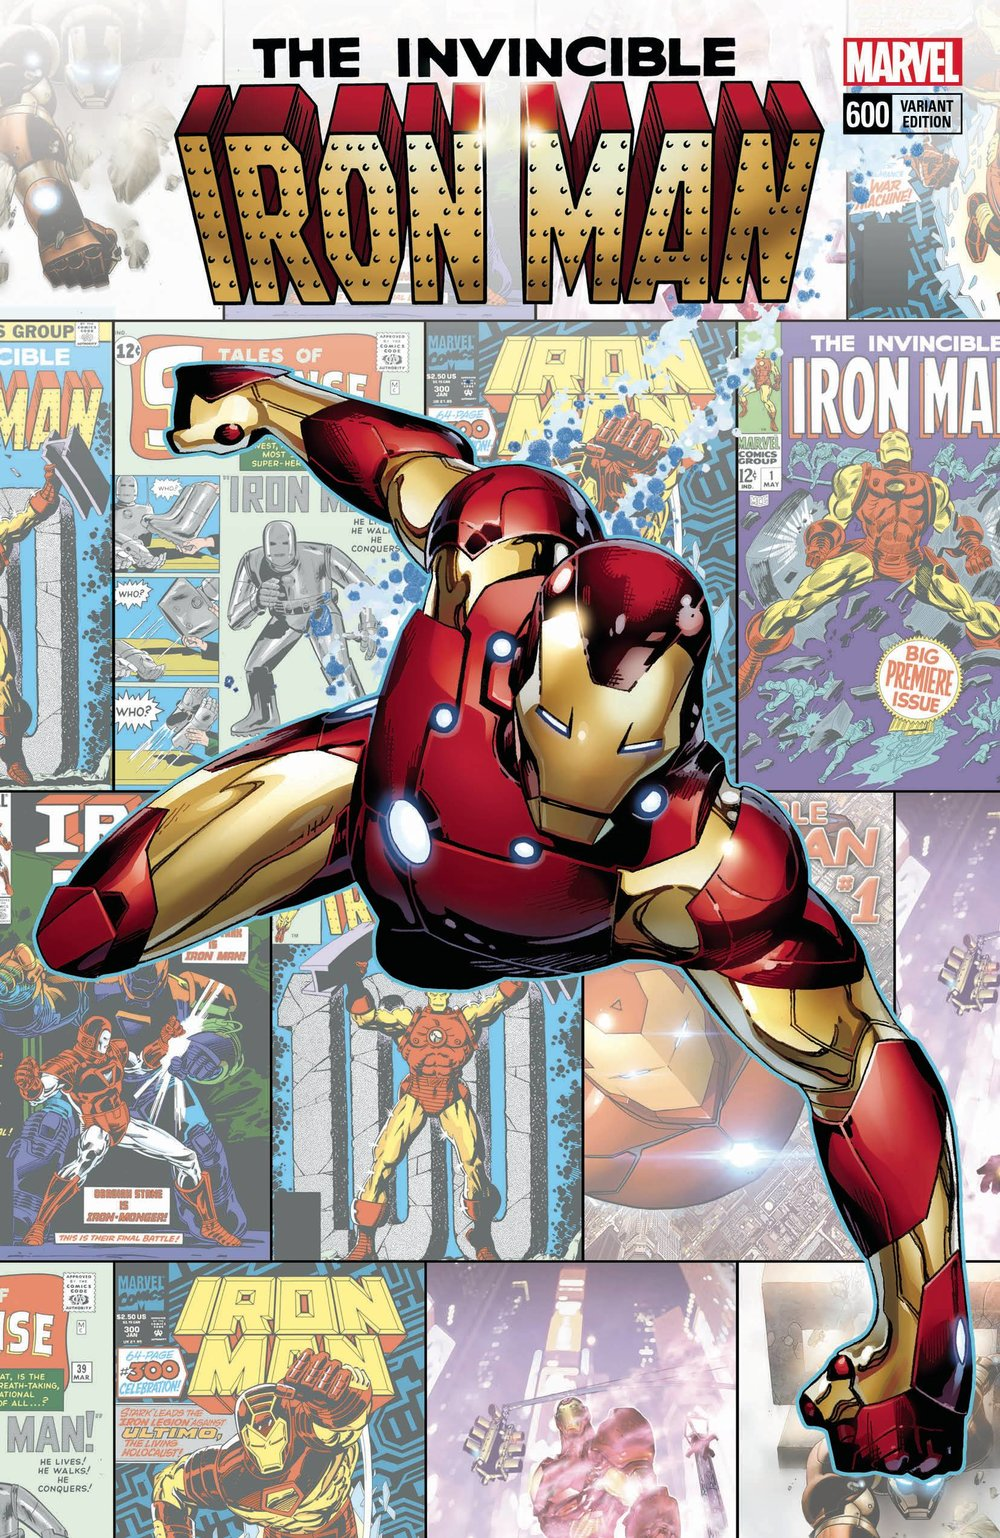 INVINCIBLE IRON MAN 600 ARTIST VAR LEG.jpg